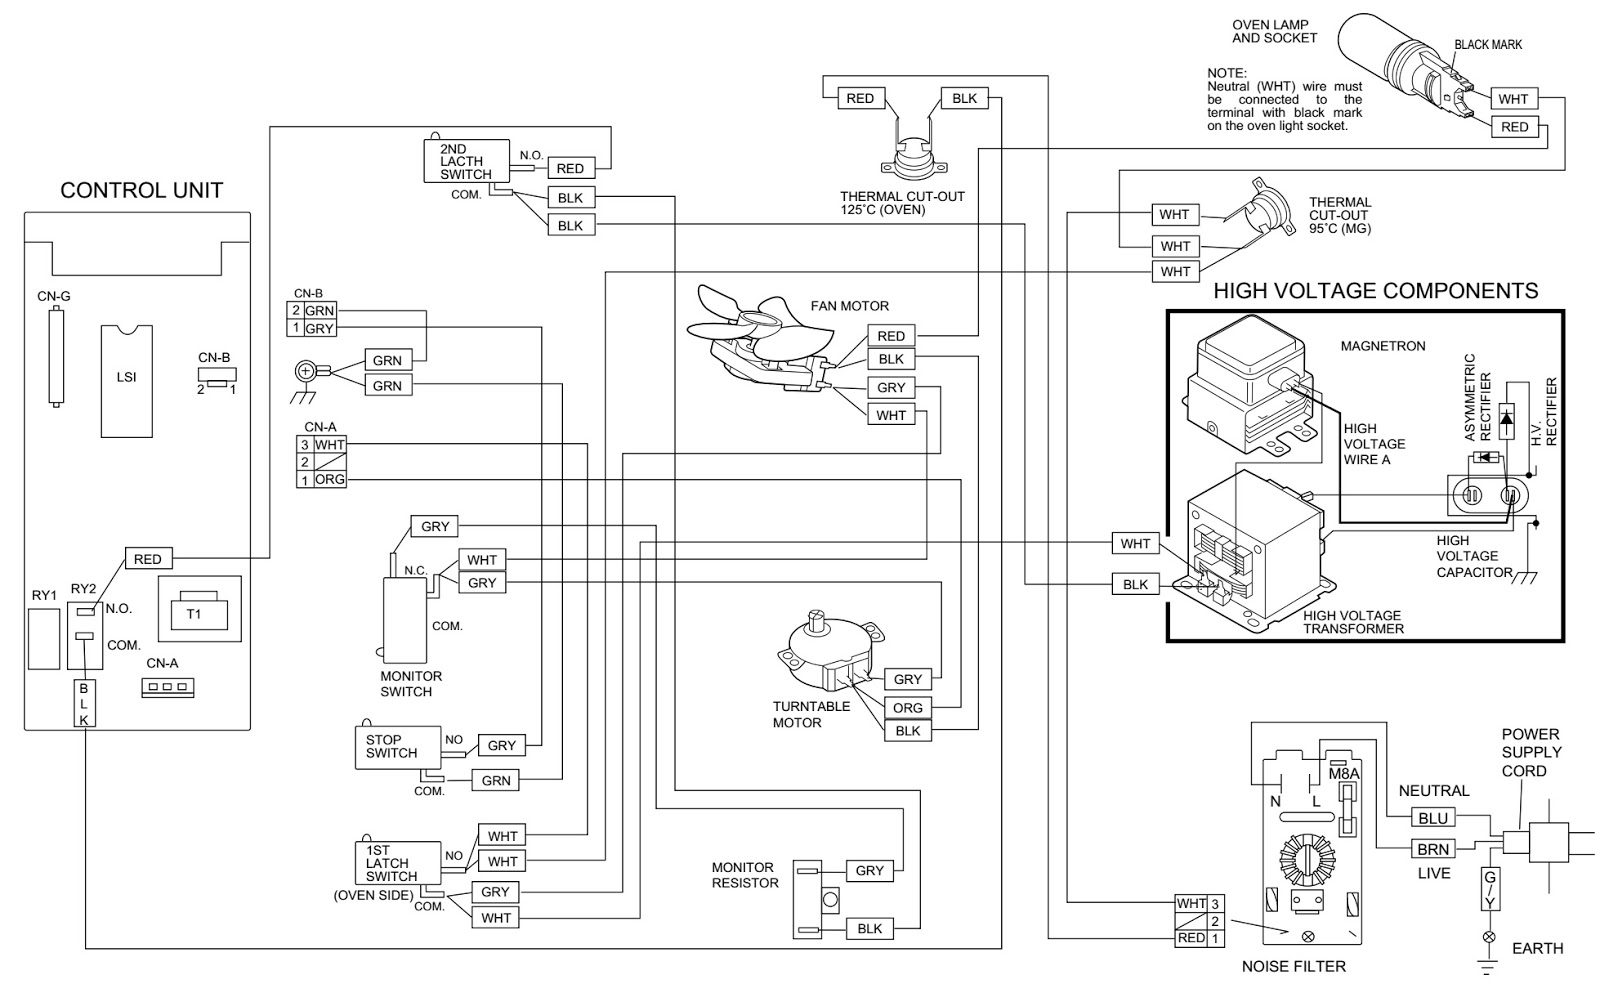 medium resolution of ge oven wiring diagram jsp28gop3bg